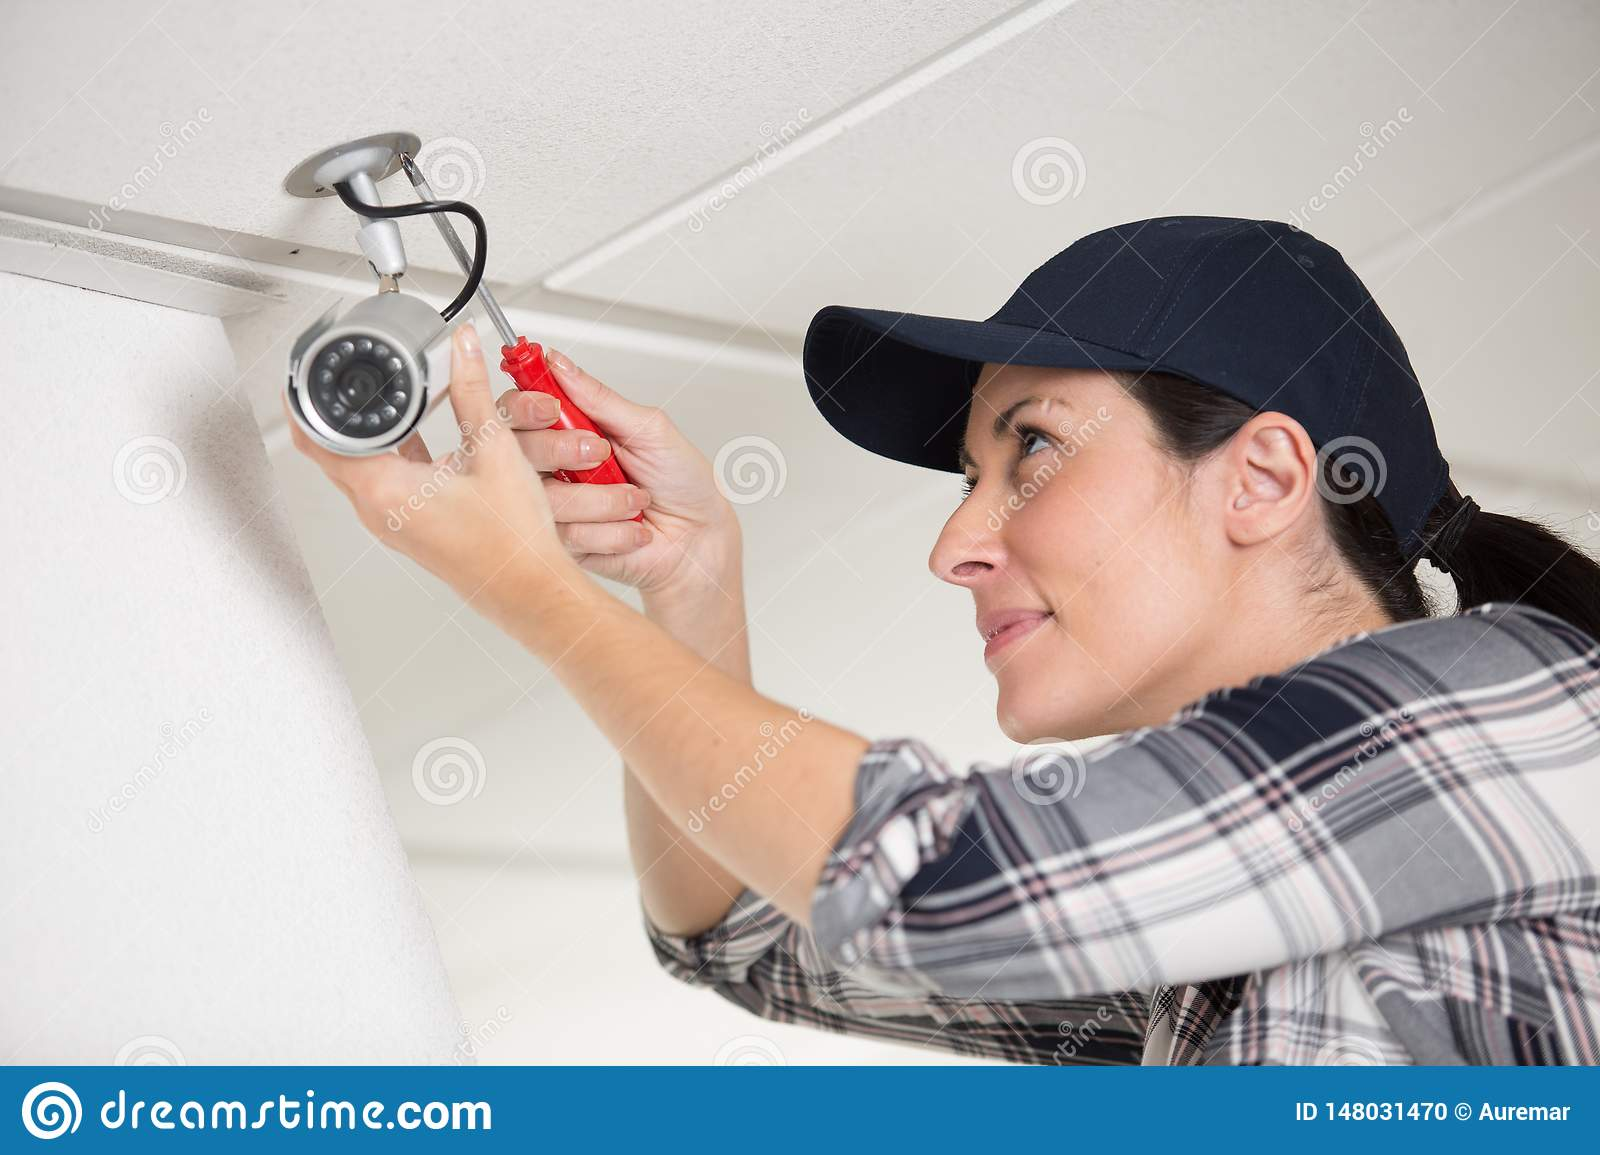 Female professional cctv technician working